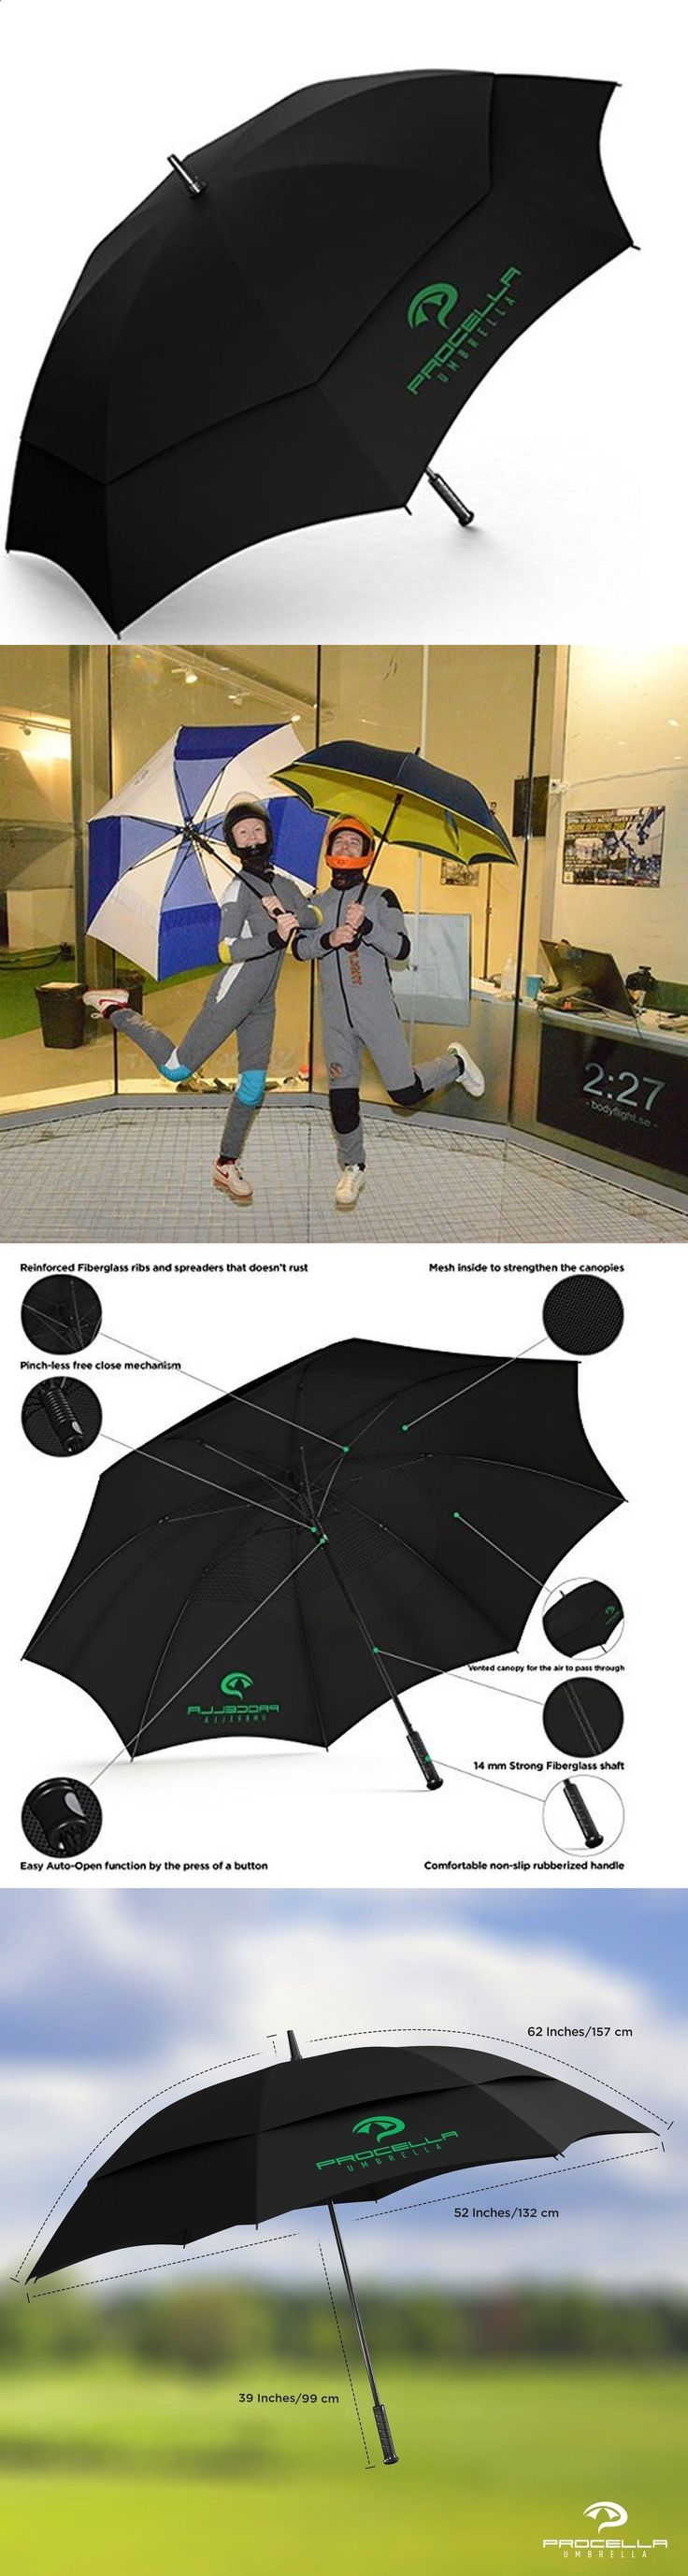 Golf Umbrellas 18933: Golf Umbrella By Procella Umbrella 62 Inch Large Auto Open Rain And Wind Resist... -> BUY IT NOW ONLY: $39.93 on eBay!